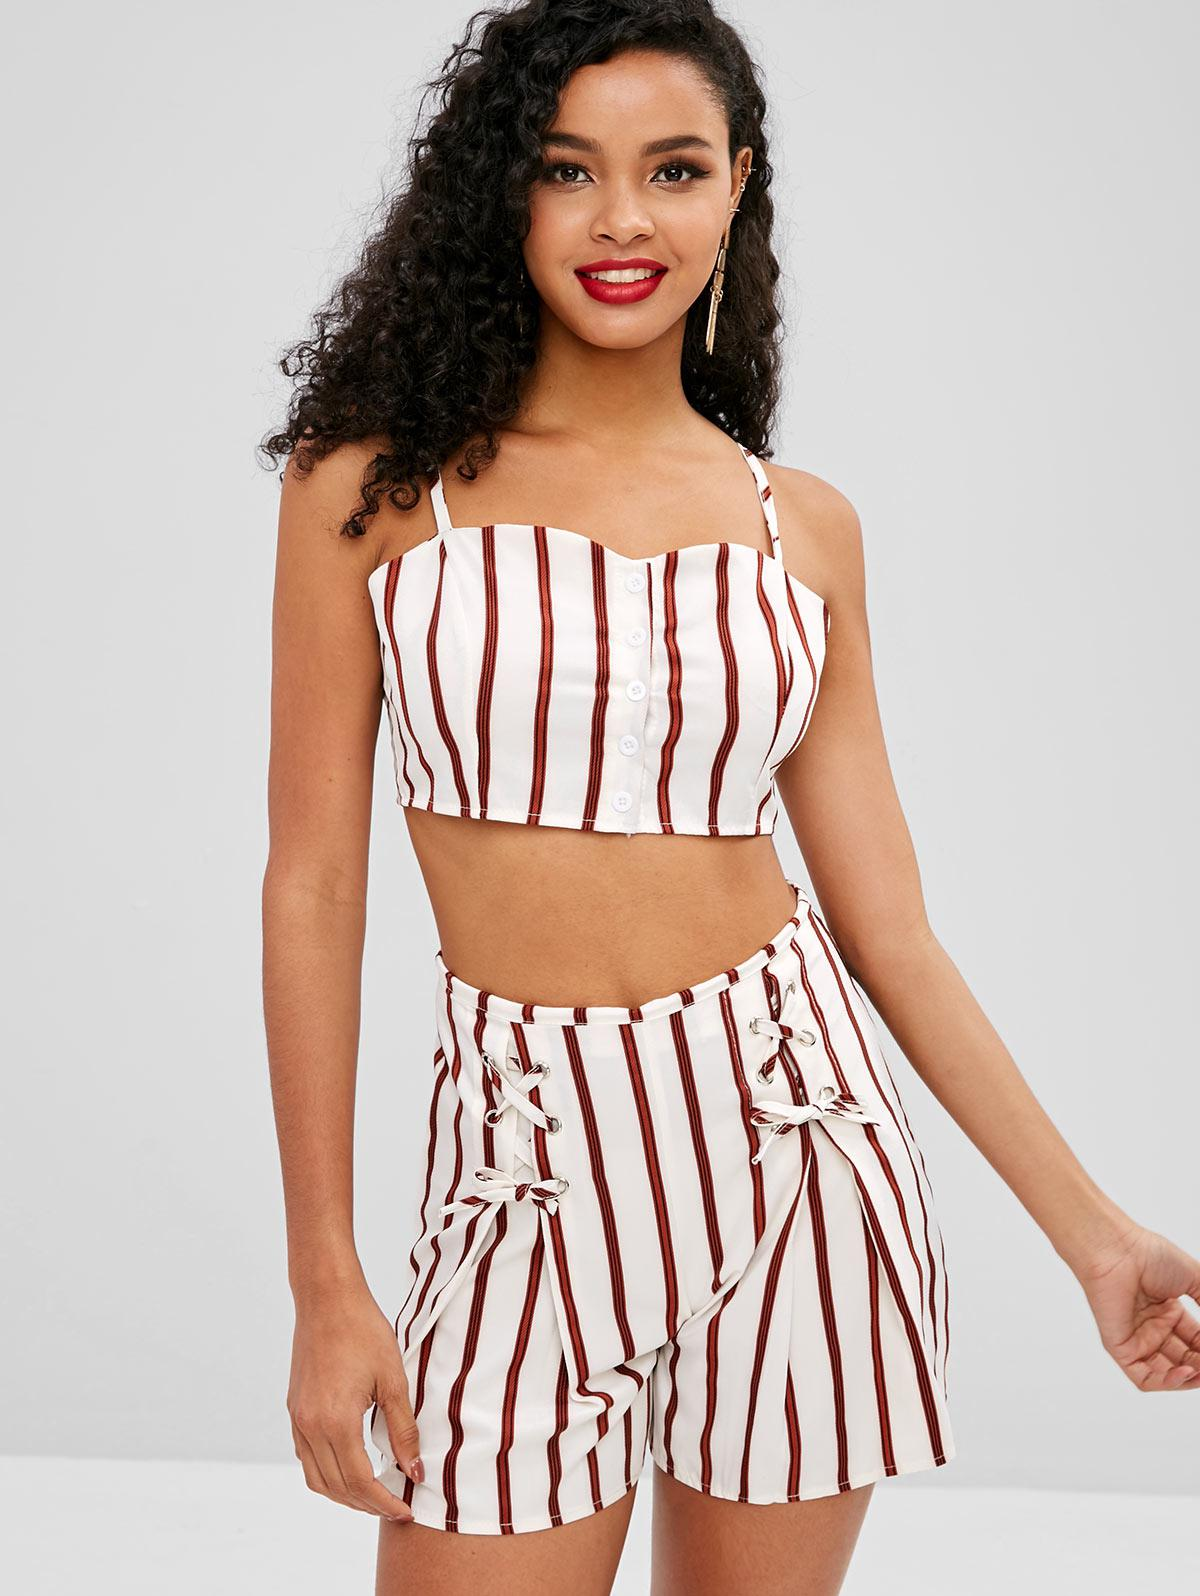 Buttoned Cami Top and Shorts Two Piece Set